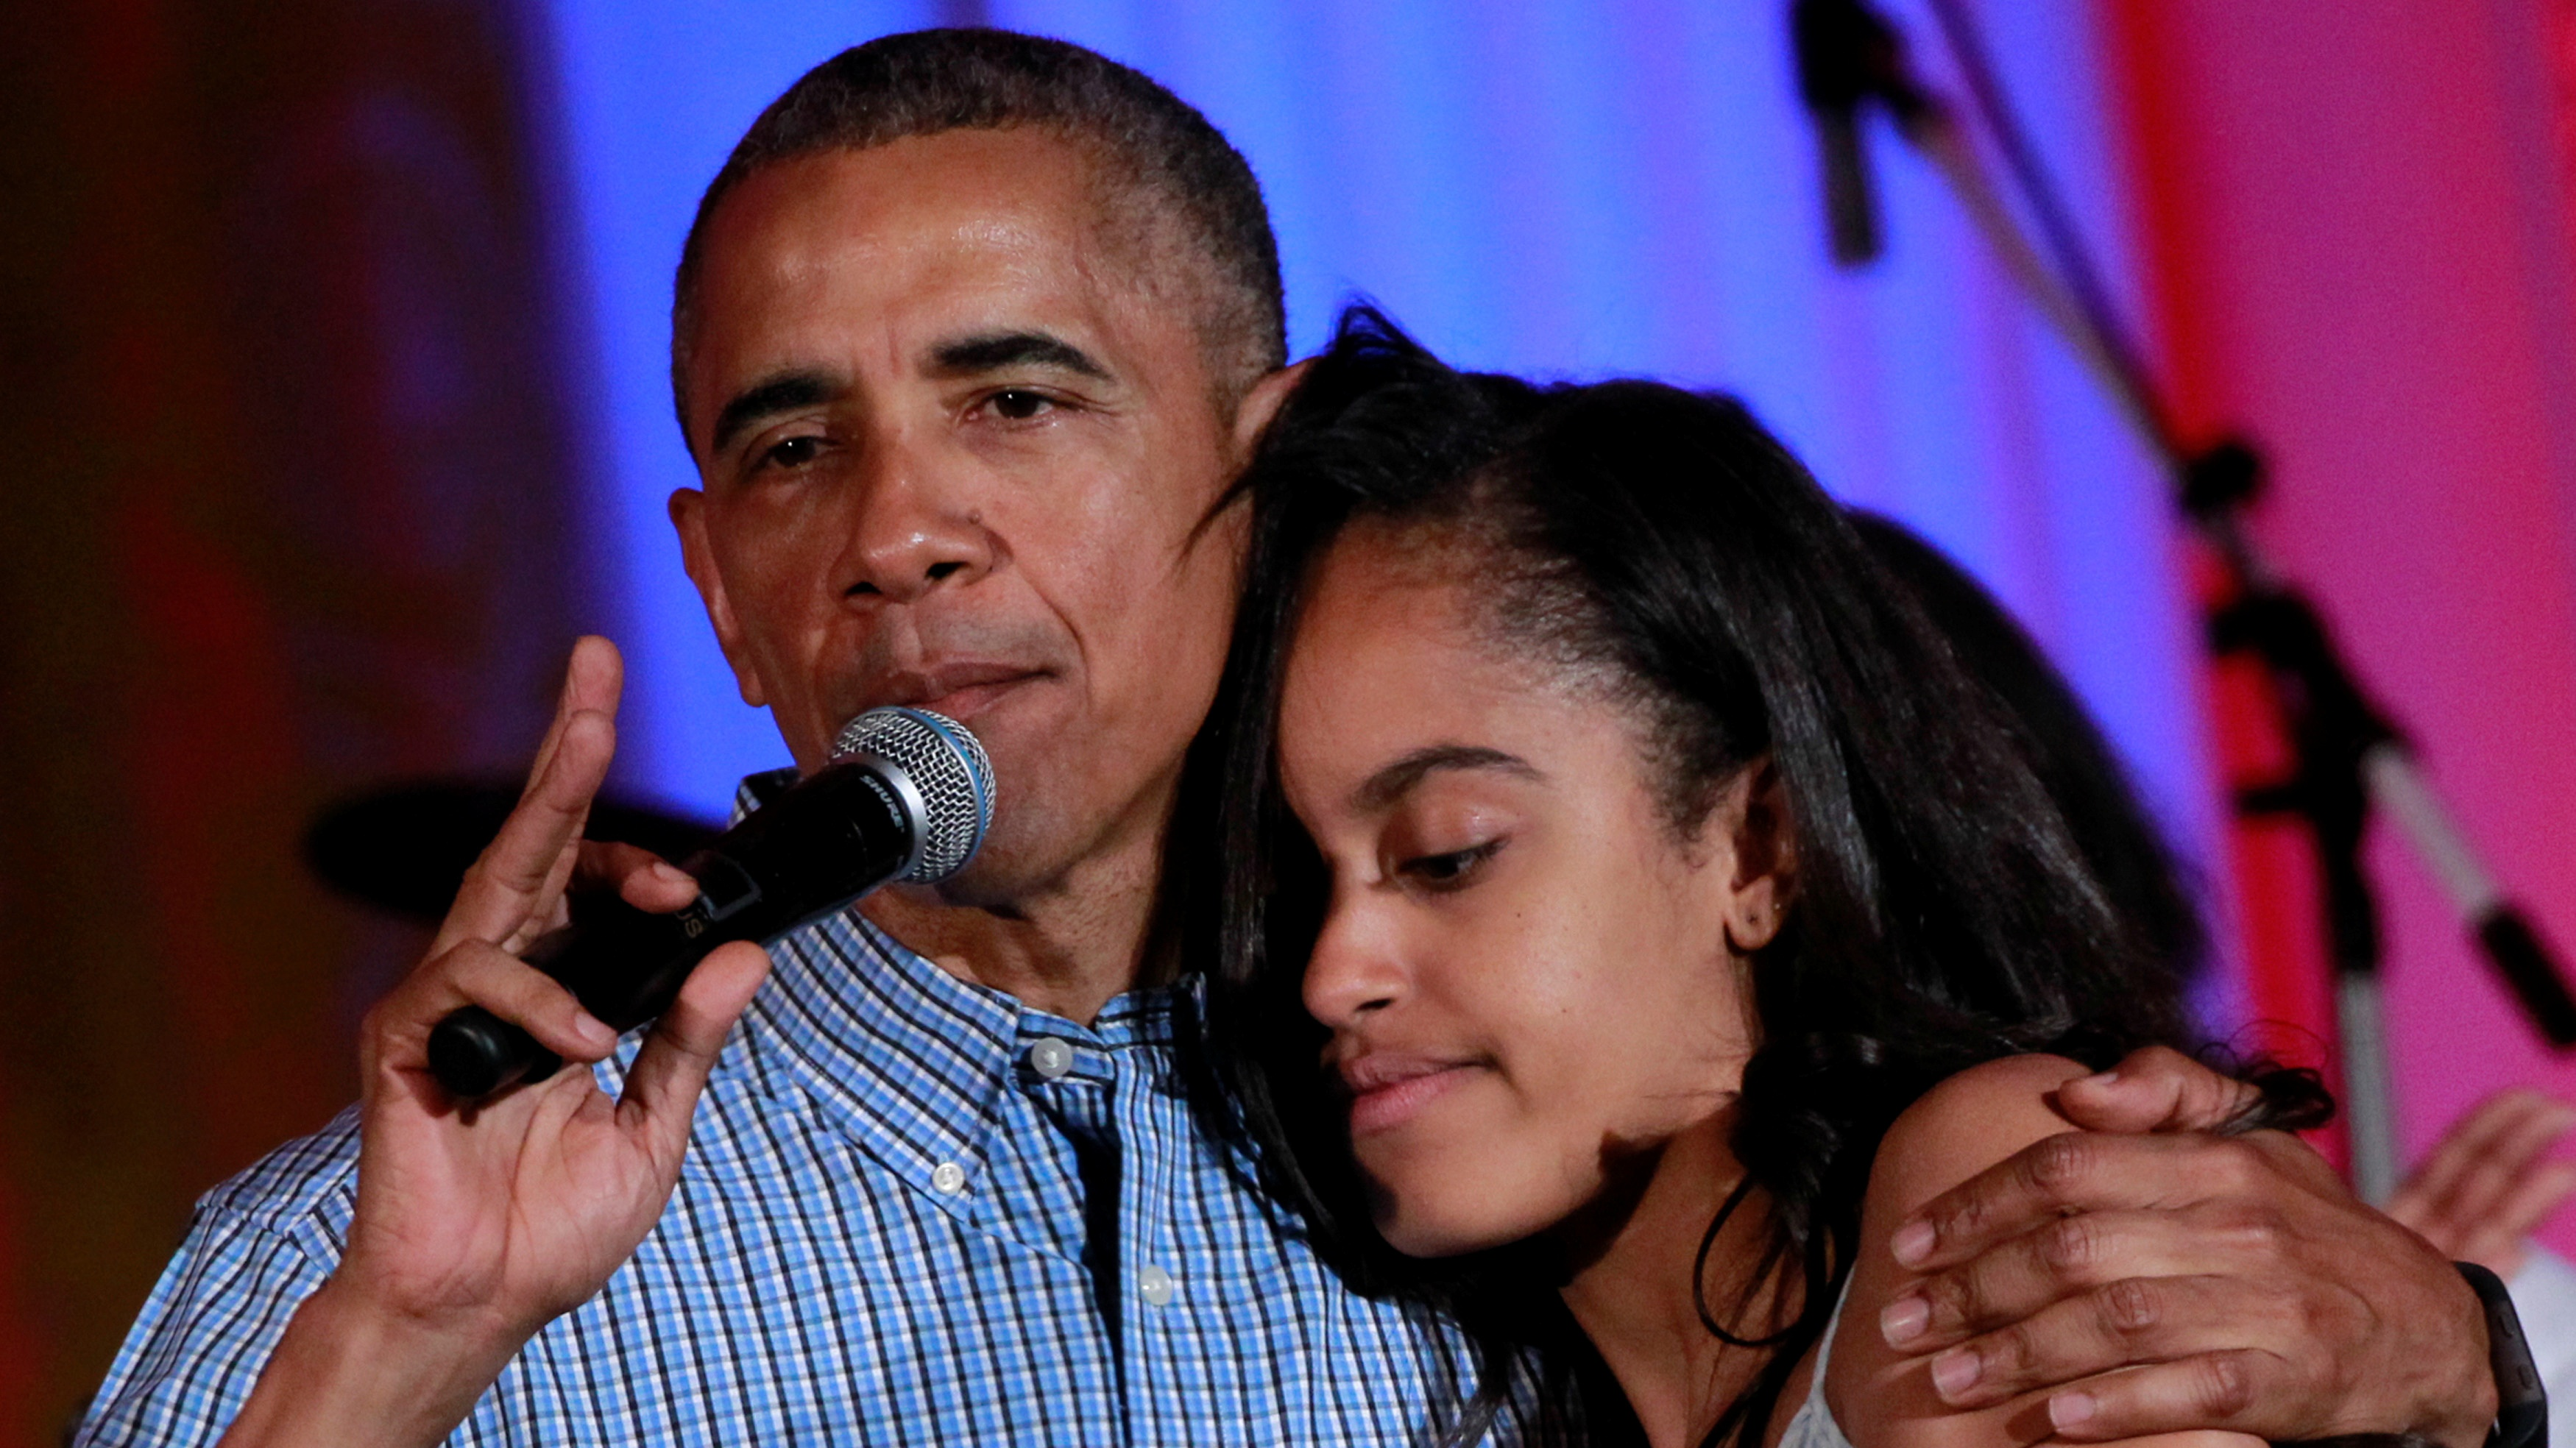 Obama's recommended reading list for his daughter includes feminist classics